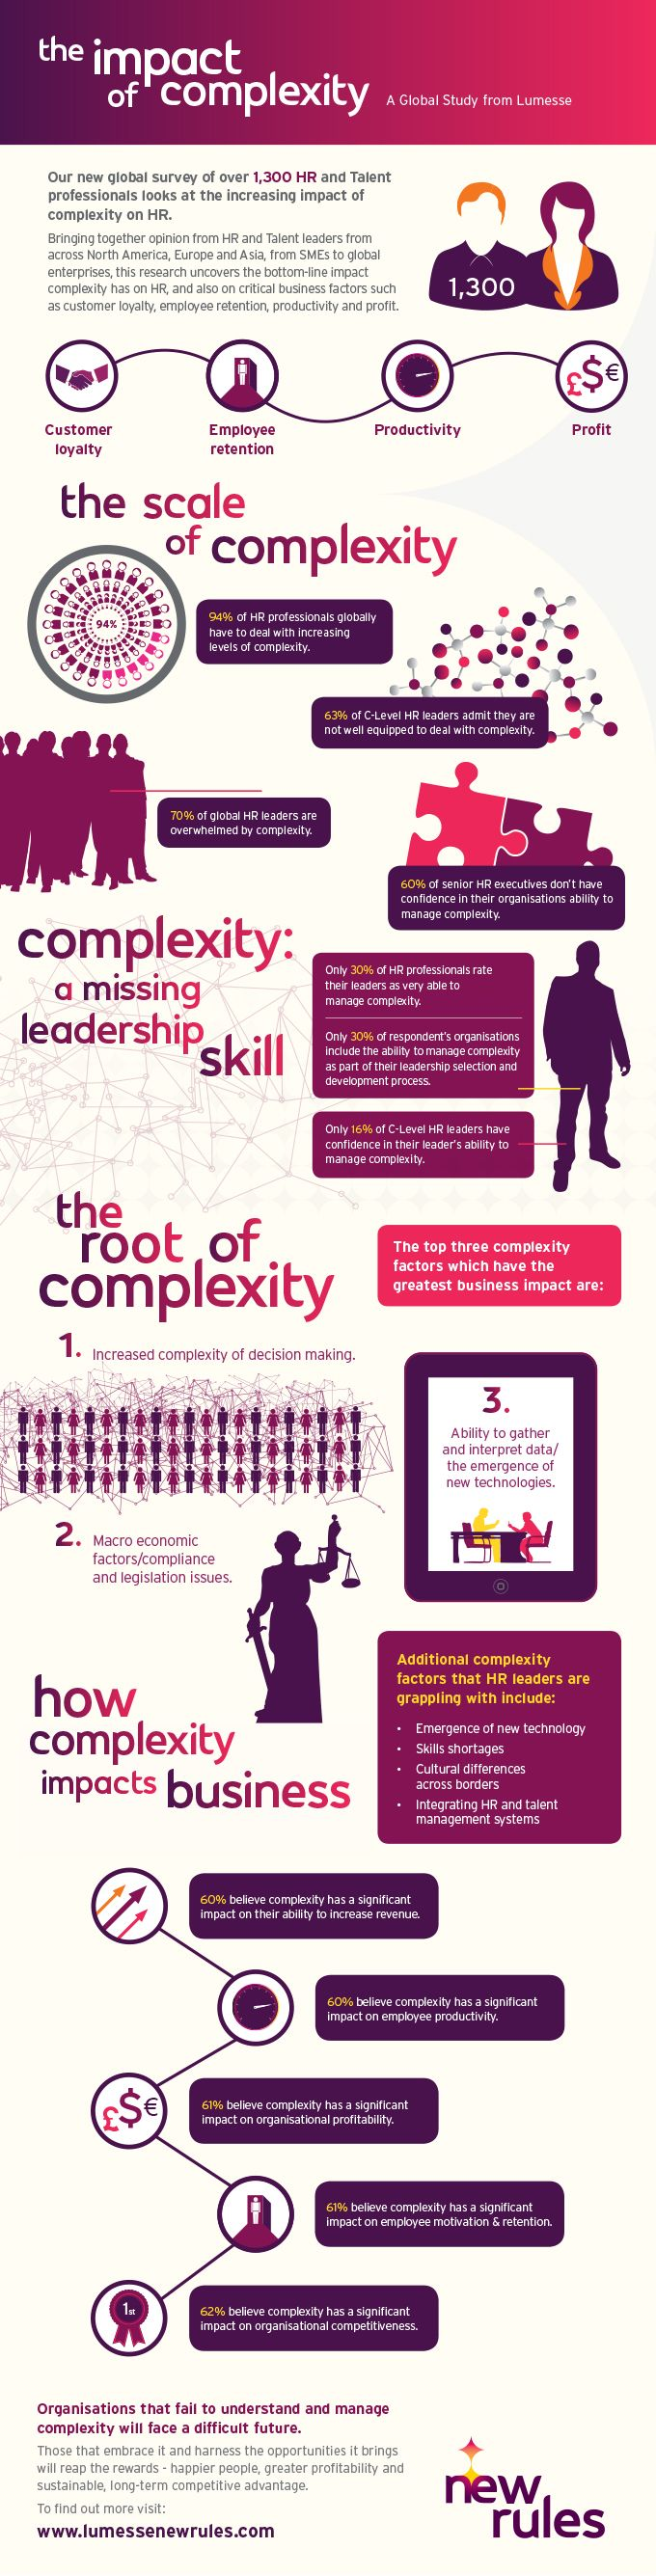 The impact of complexity on the workplace.